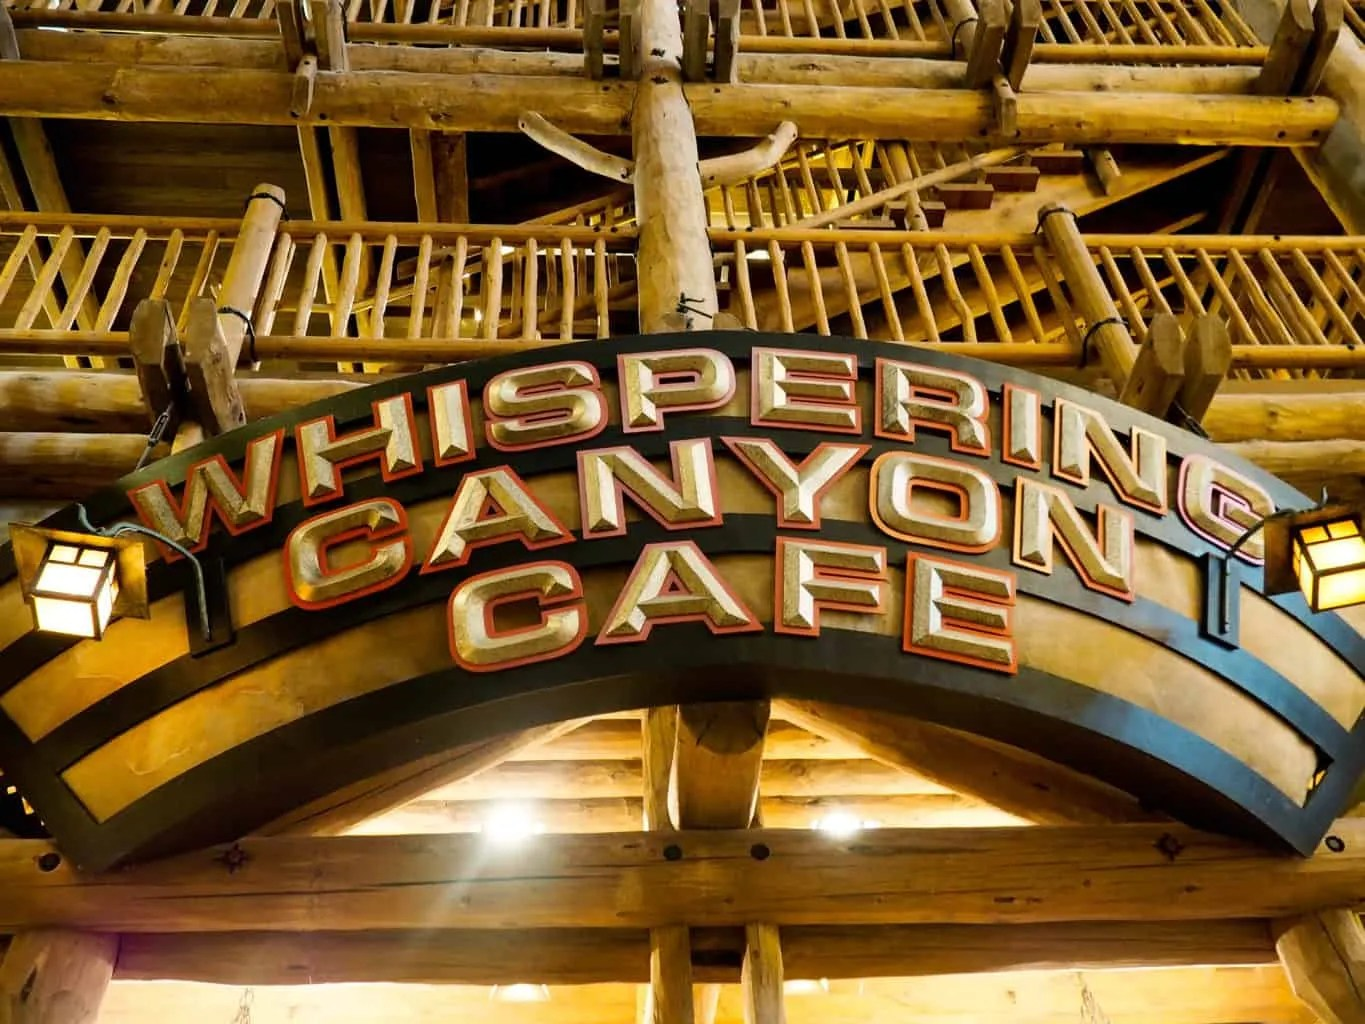 Whispering Canyon Cafe at Fort Wilderness Lodge: Restaurant Review